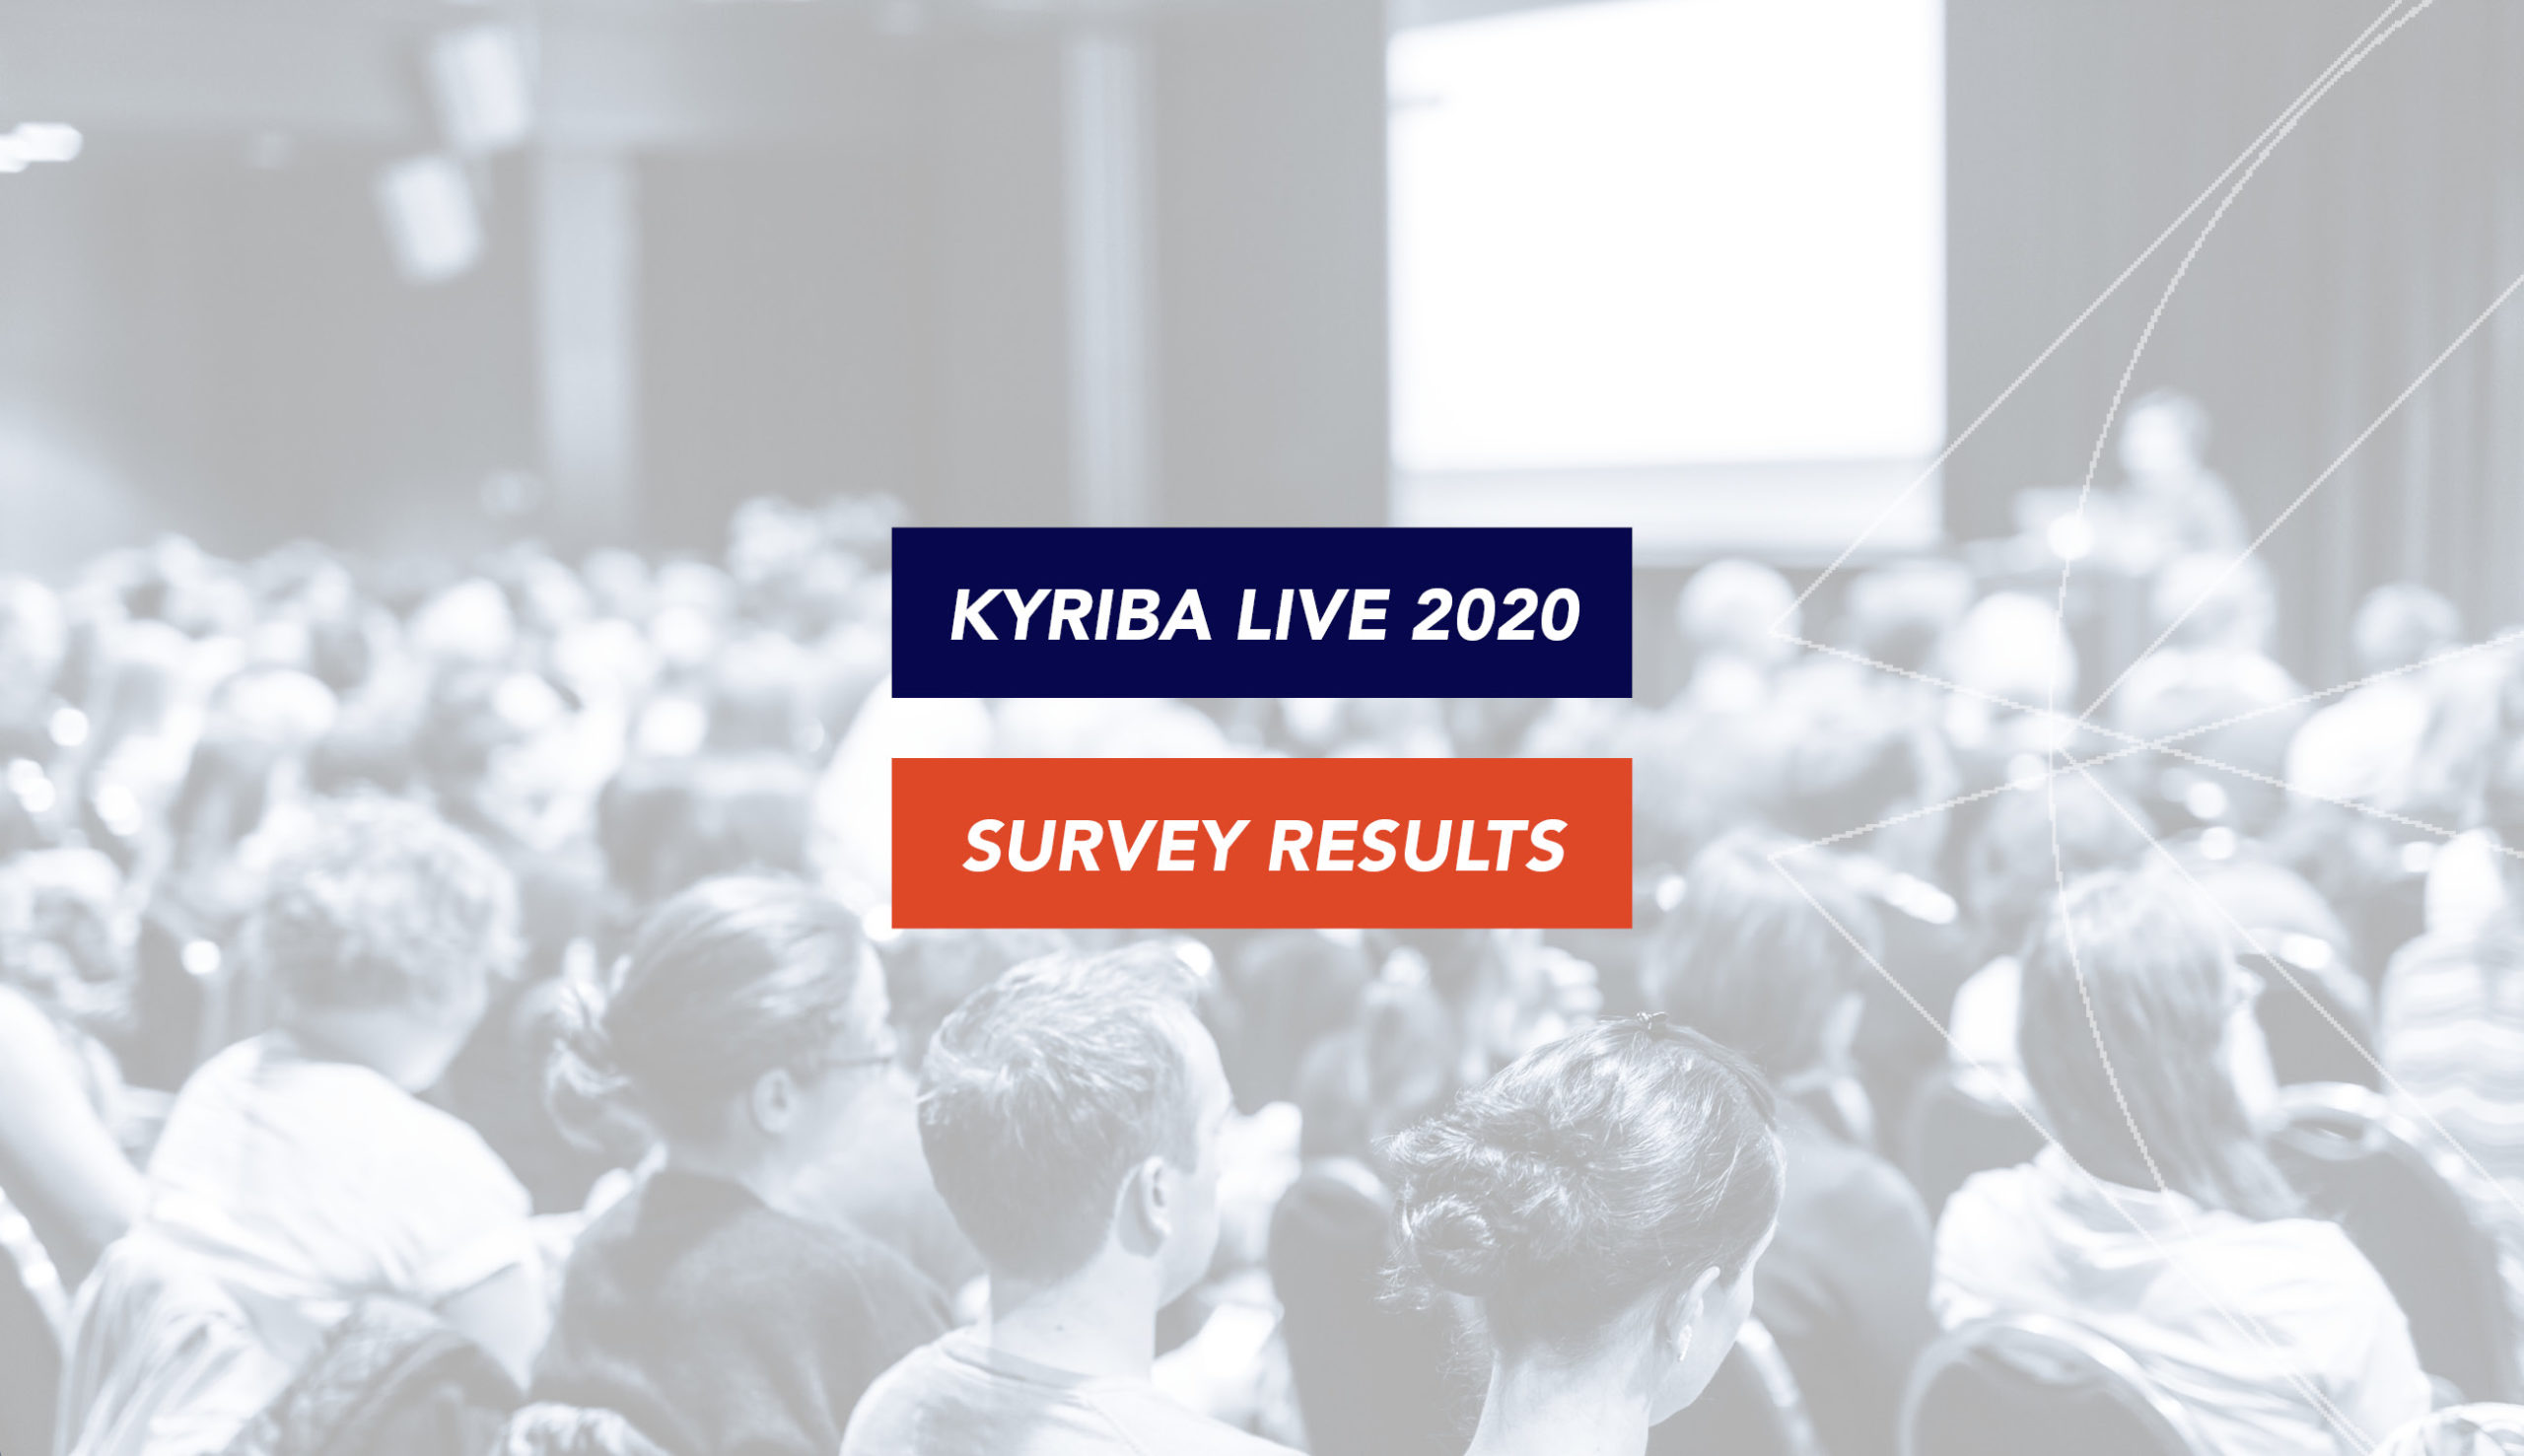 KYRIBA survey results